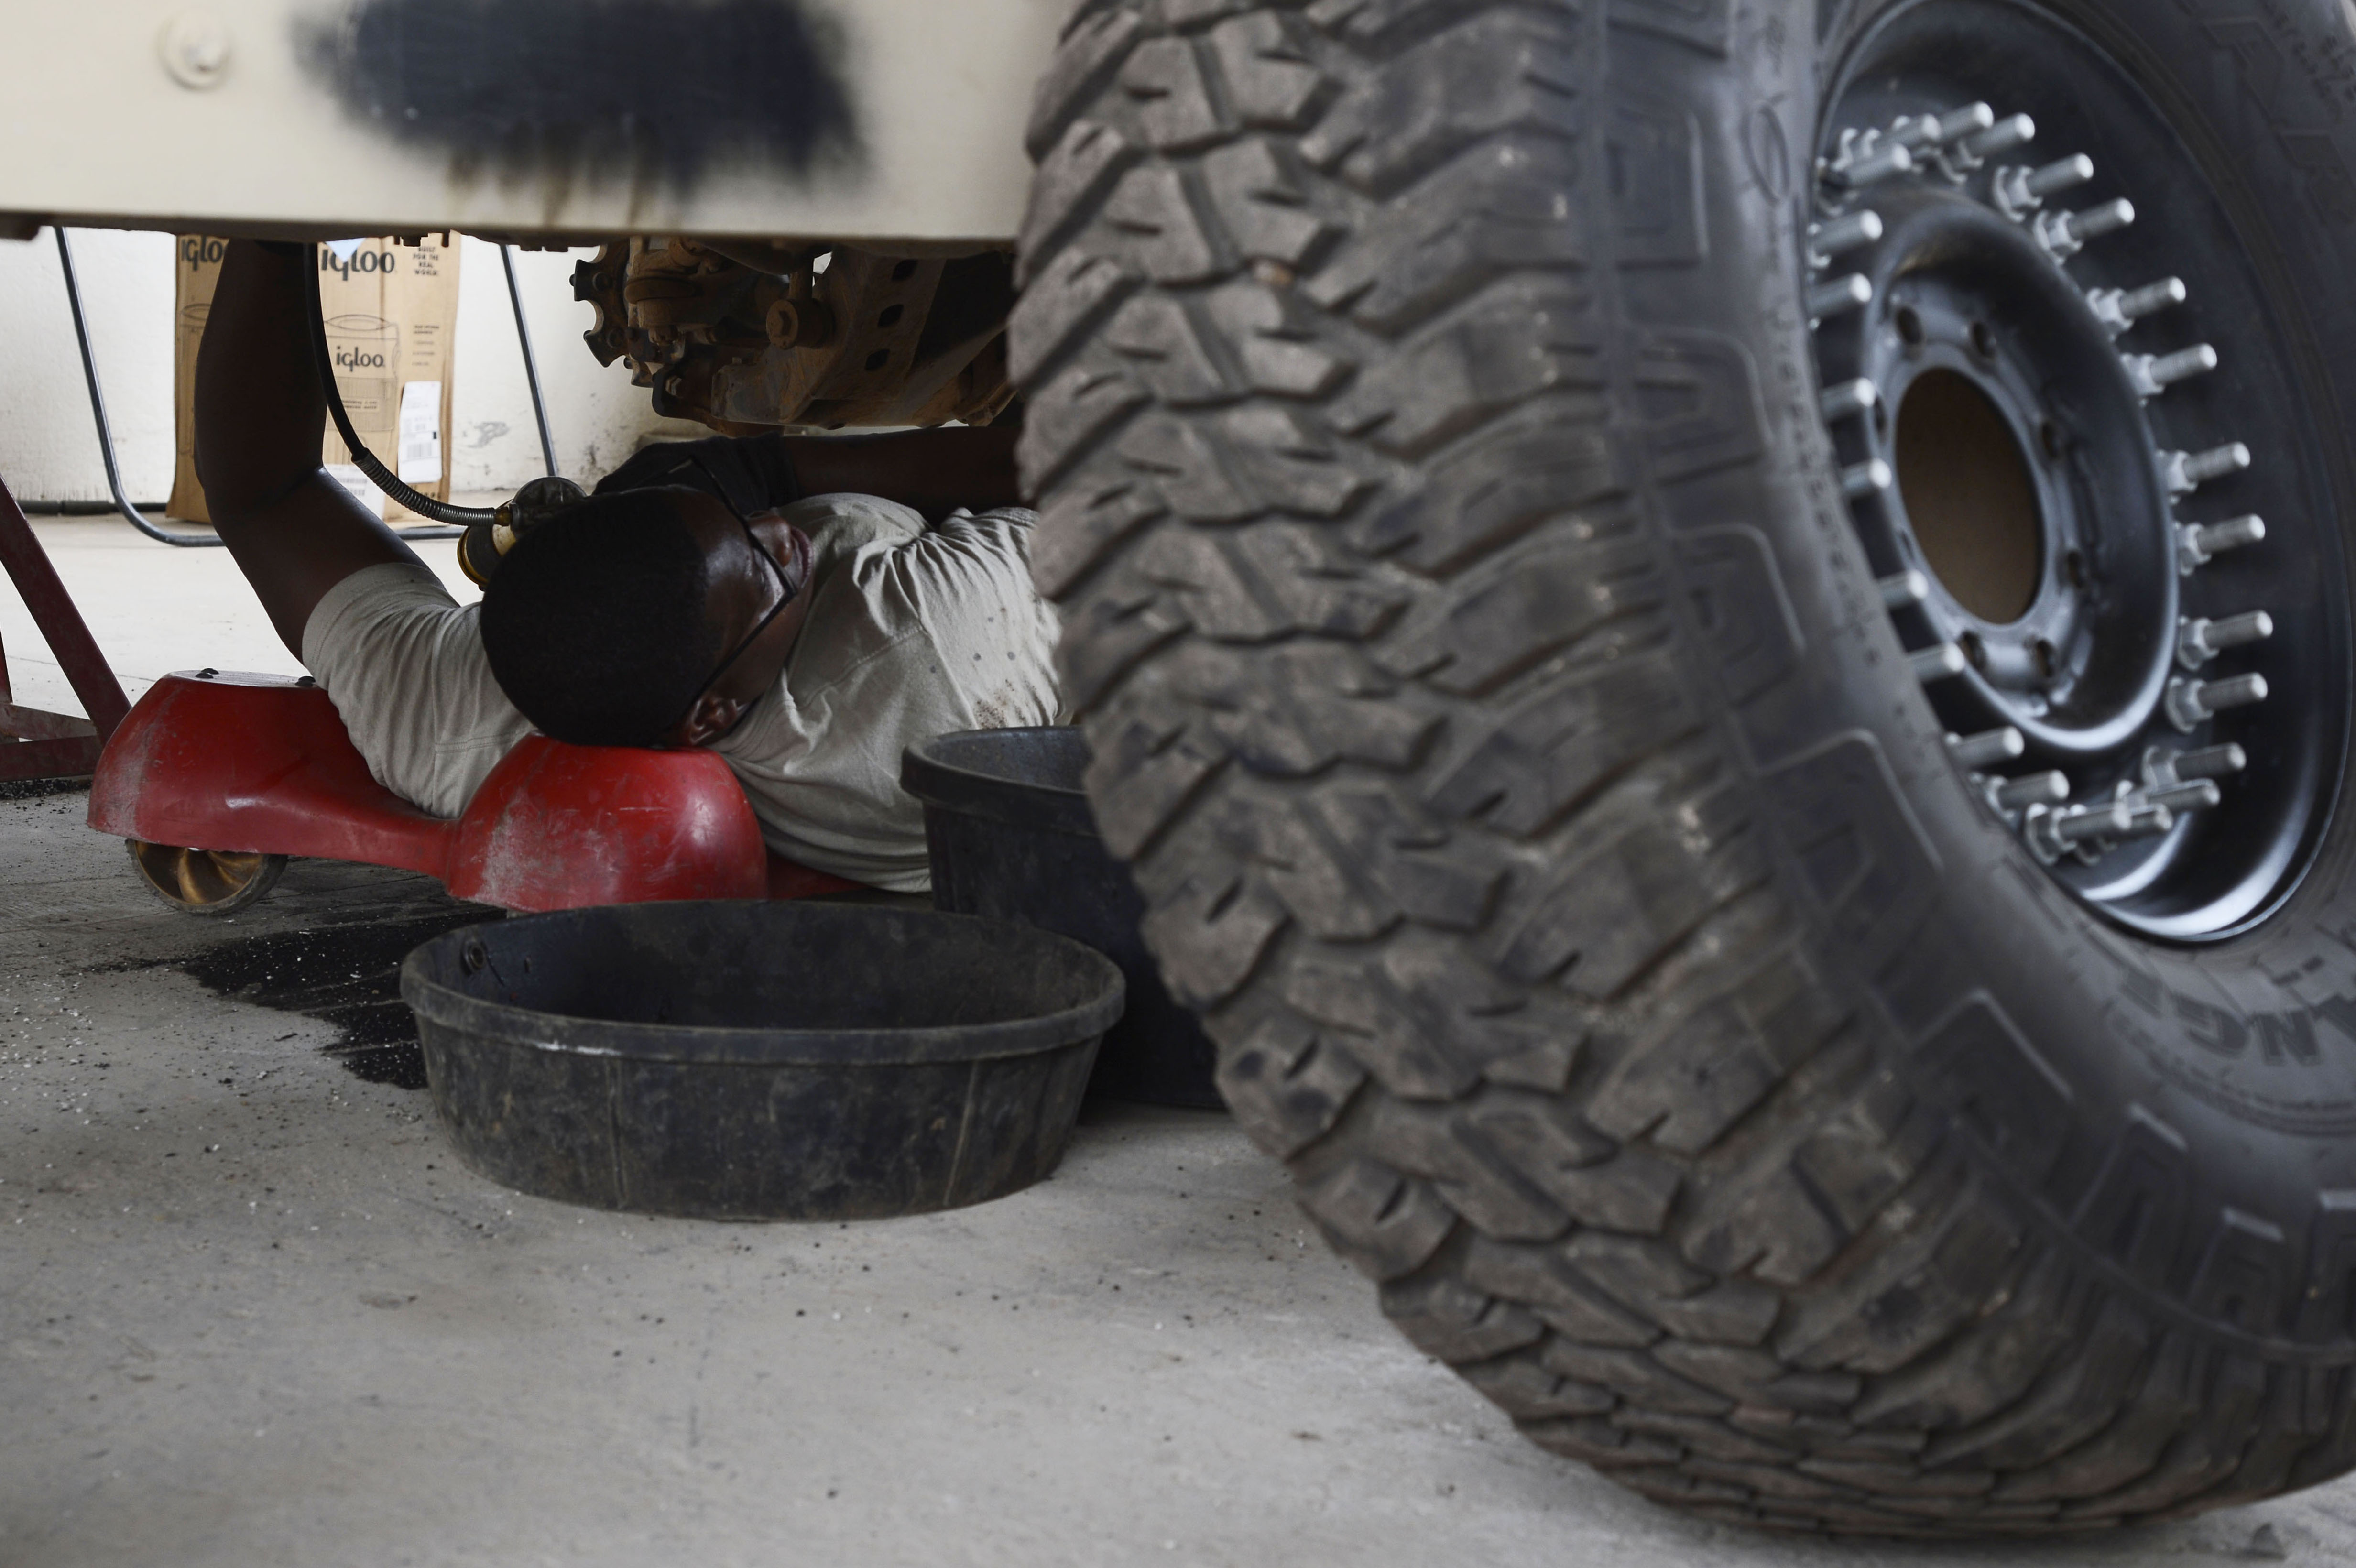 U.S. Army Spc. Christopher Davis of the 1st Battalion, 153rd Infantry Regiment, deployed with Combined Joint Task Force-Horn of Africa (CJTF-HOA) at Camp Lemonnier, Djibouti, checks the undercarriage during a biannual service inspection of a Humvee, May 29, 2017. The soldiers maintain vehicles which support efforts in countering regional violent extremist organizations. (U.S. Air Force photo by Staff Sgt. Lindsay Cryer)